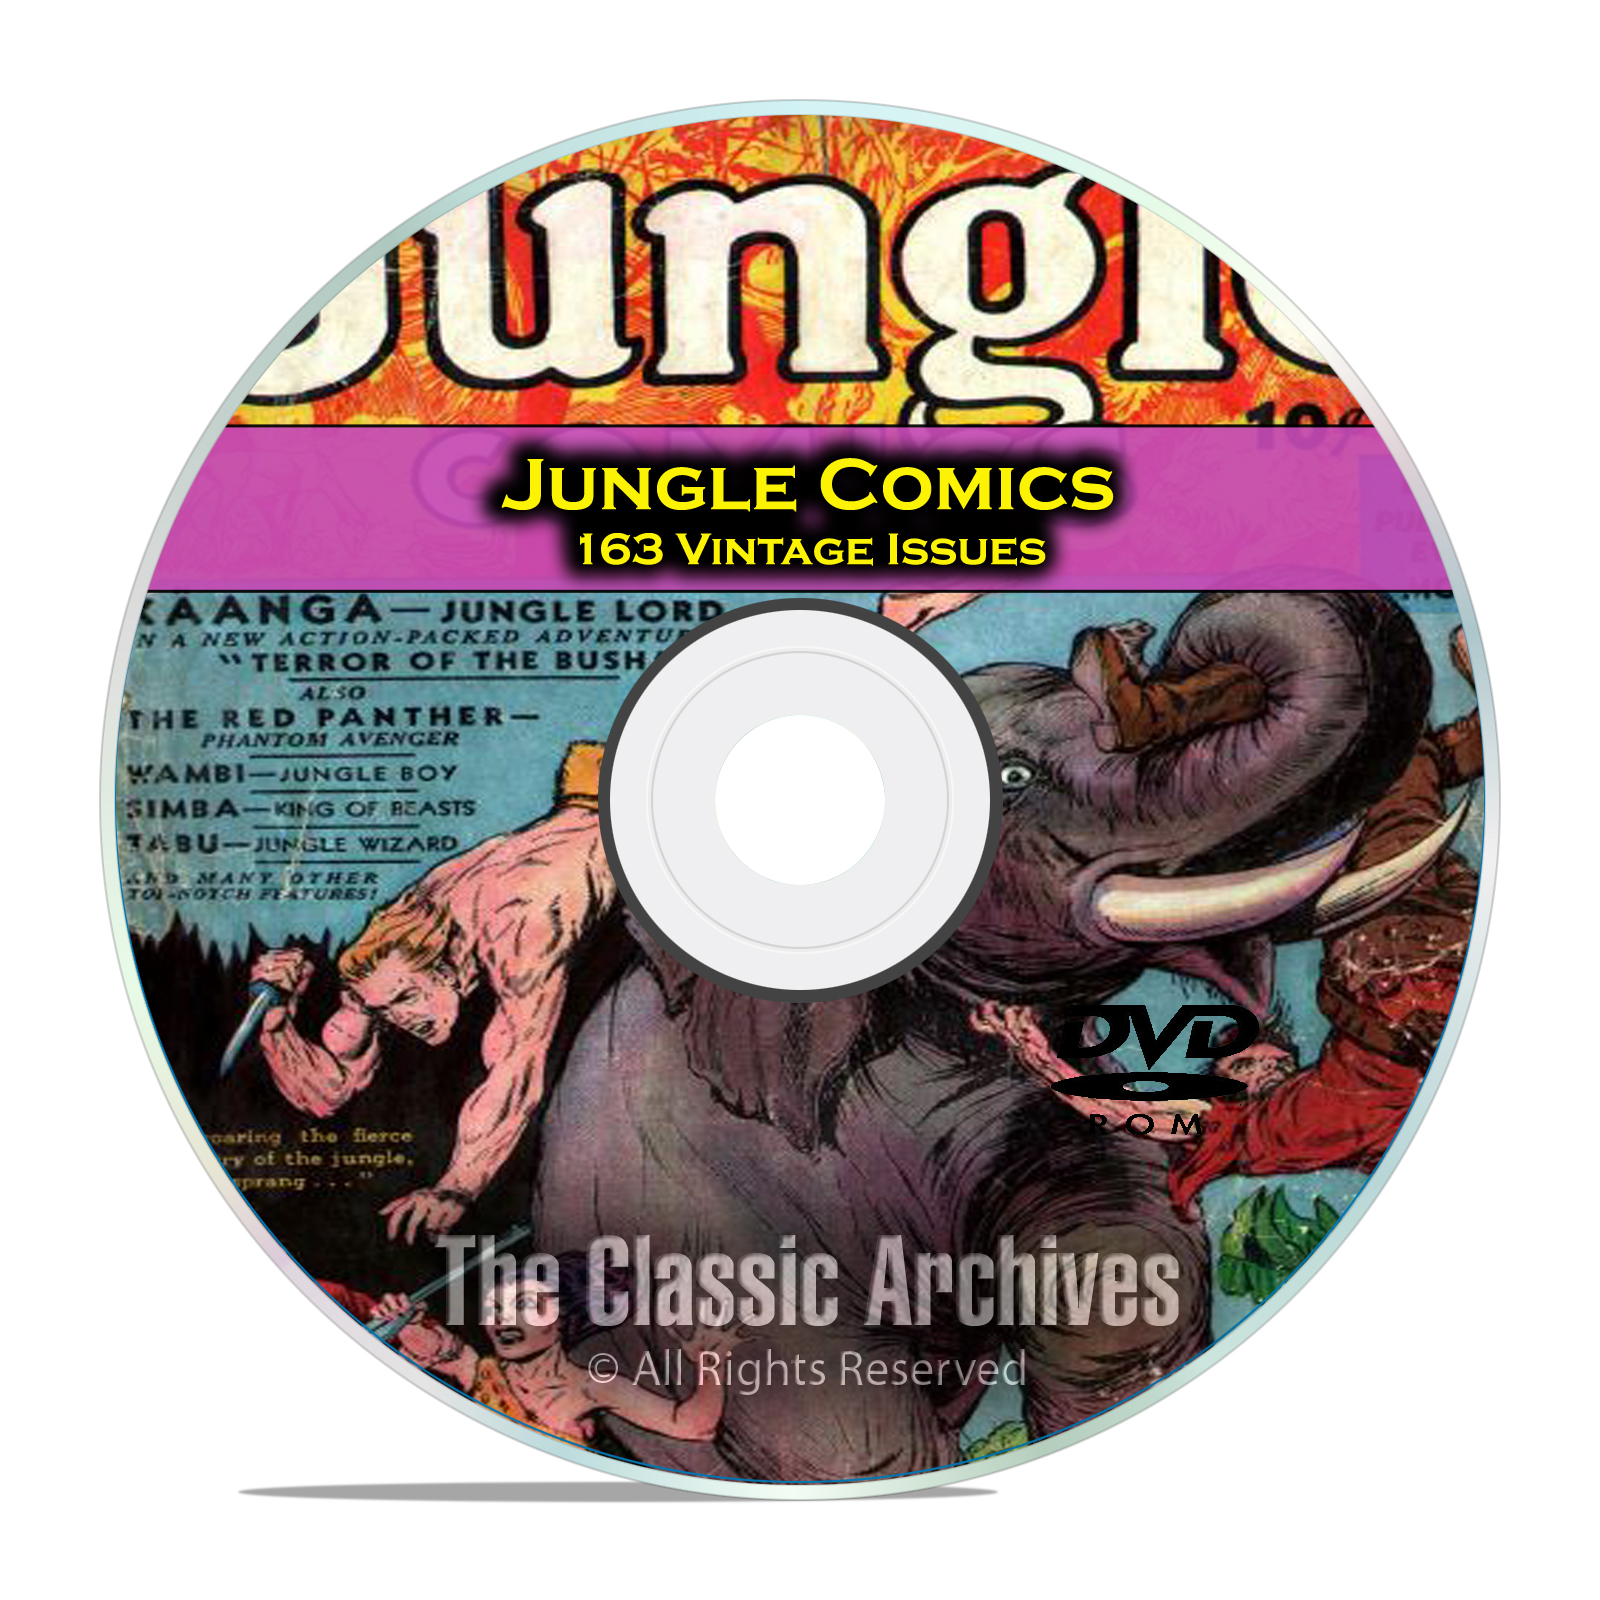 Jungle Comics, Fiction House, Full Run, 163 Issues, Golden Age Comics DVD